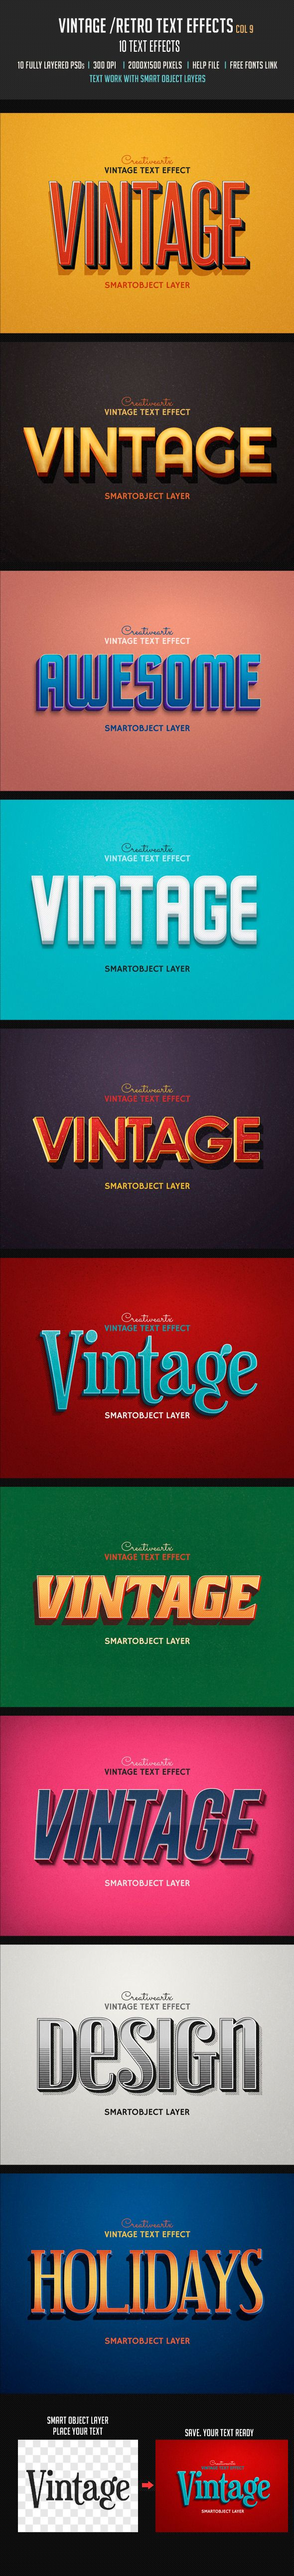 Vintage Retro Text Effects Col 9 #photoshop Download here: http://graphicriver.net/item/vintage-retro-text-effects-col-9/9814778?ref=ksioks